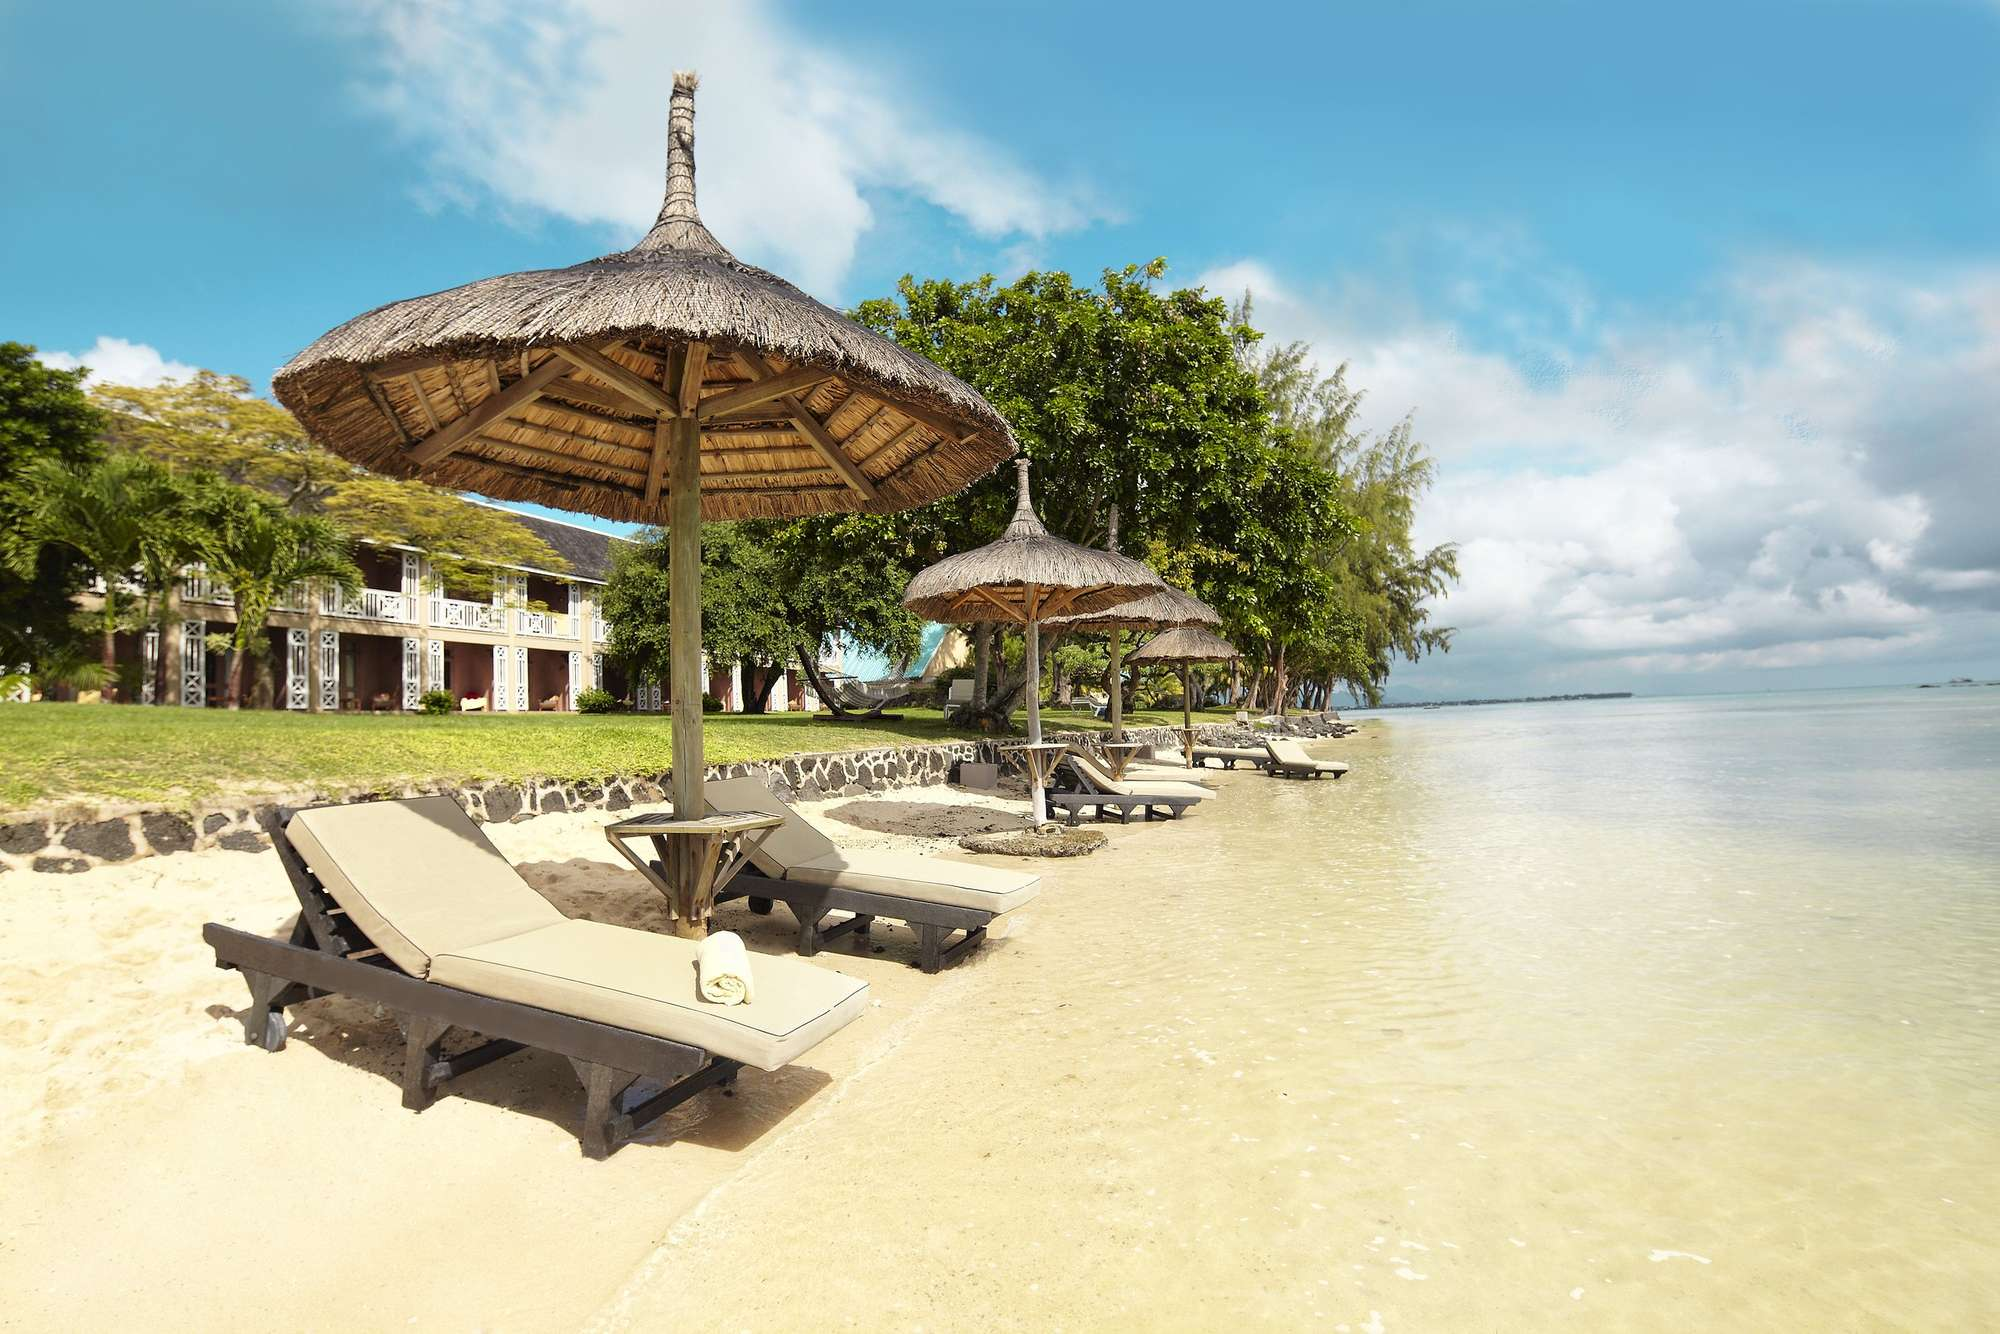 https _ns.clubmed.com_dream_RESORTS_3T___4T_Asie_et_Ocean_indien_La_Pointe_aux_Canonniers_47398-1ng0siuasi-swhr